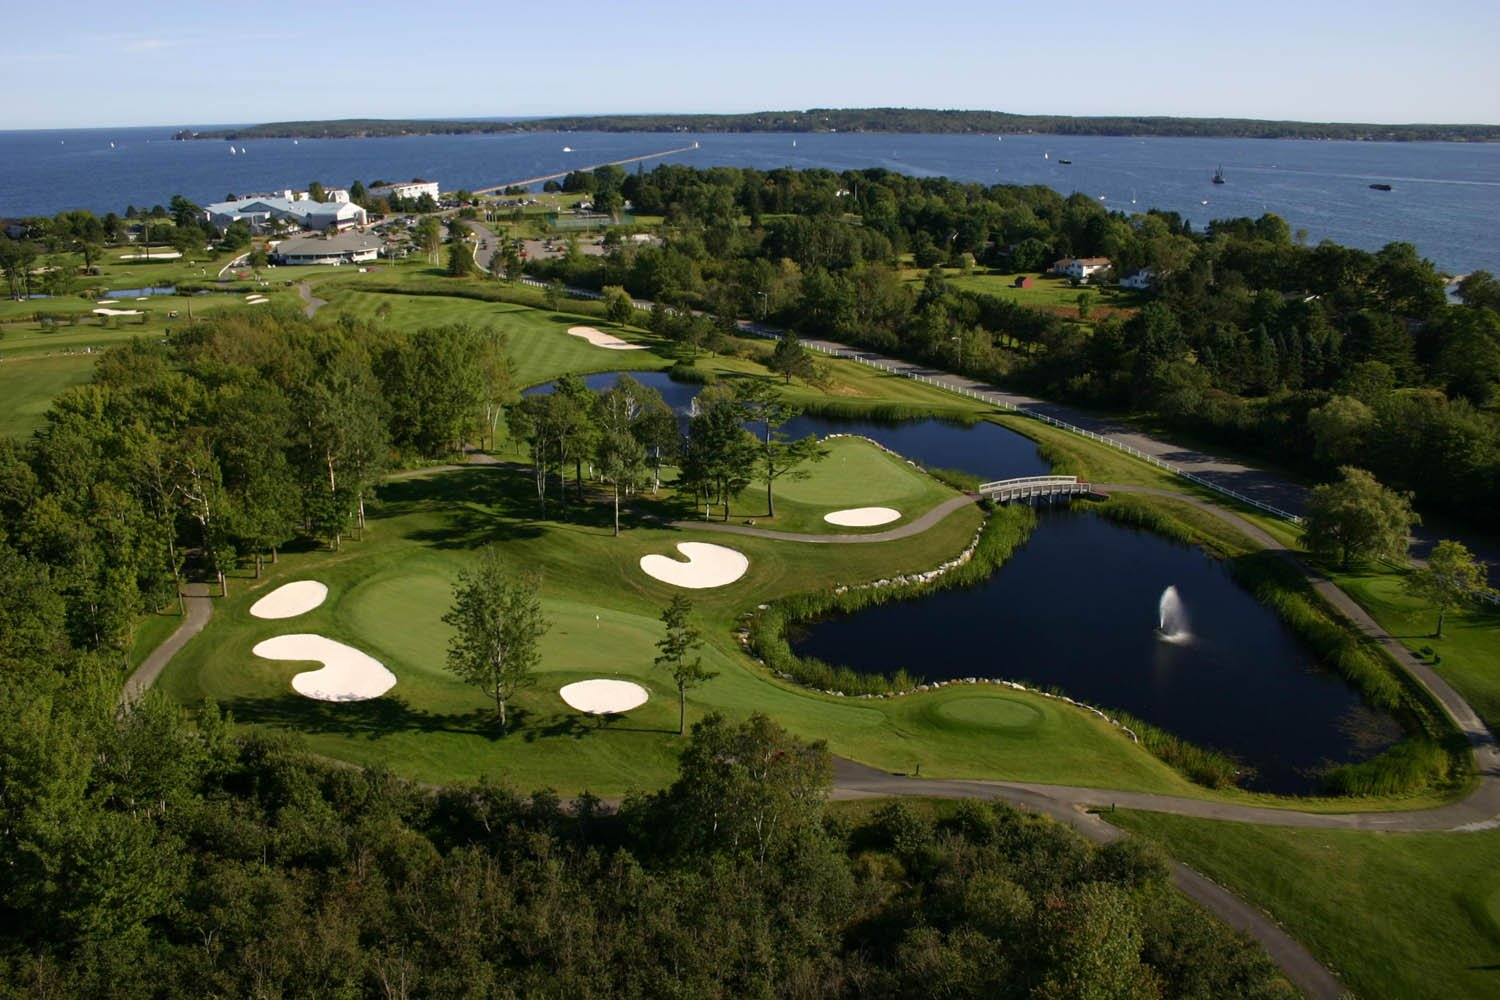 Aerial view of golf course at the resort